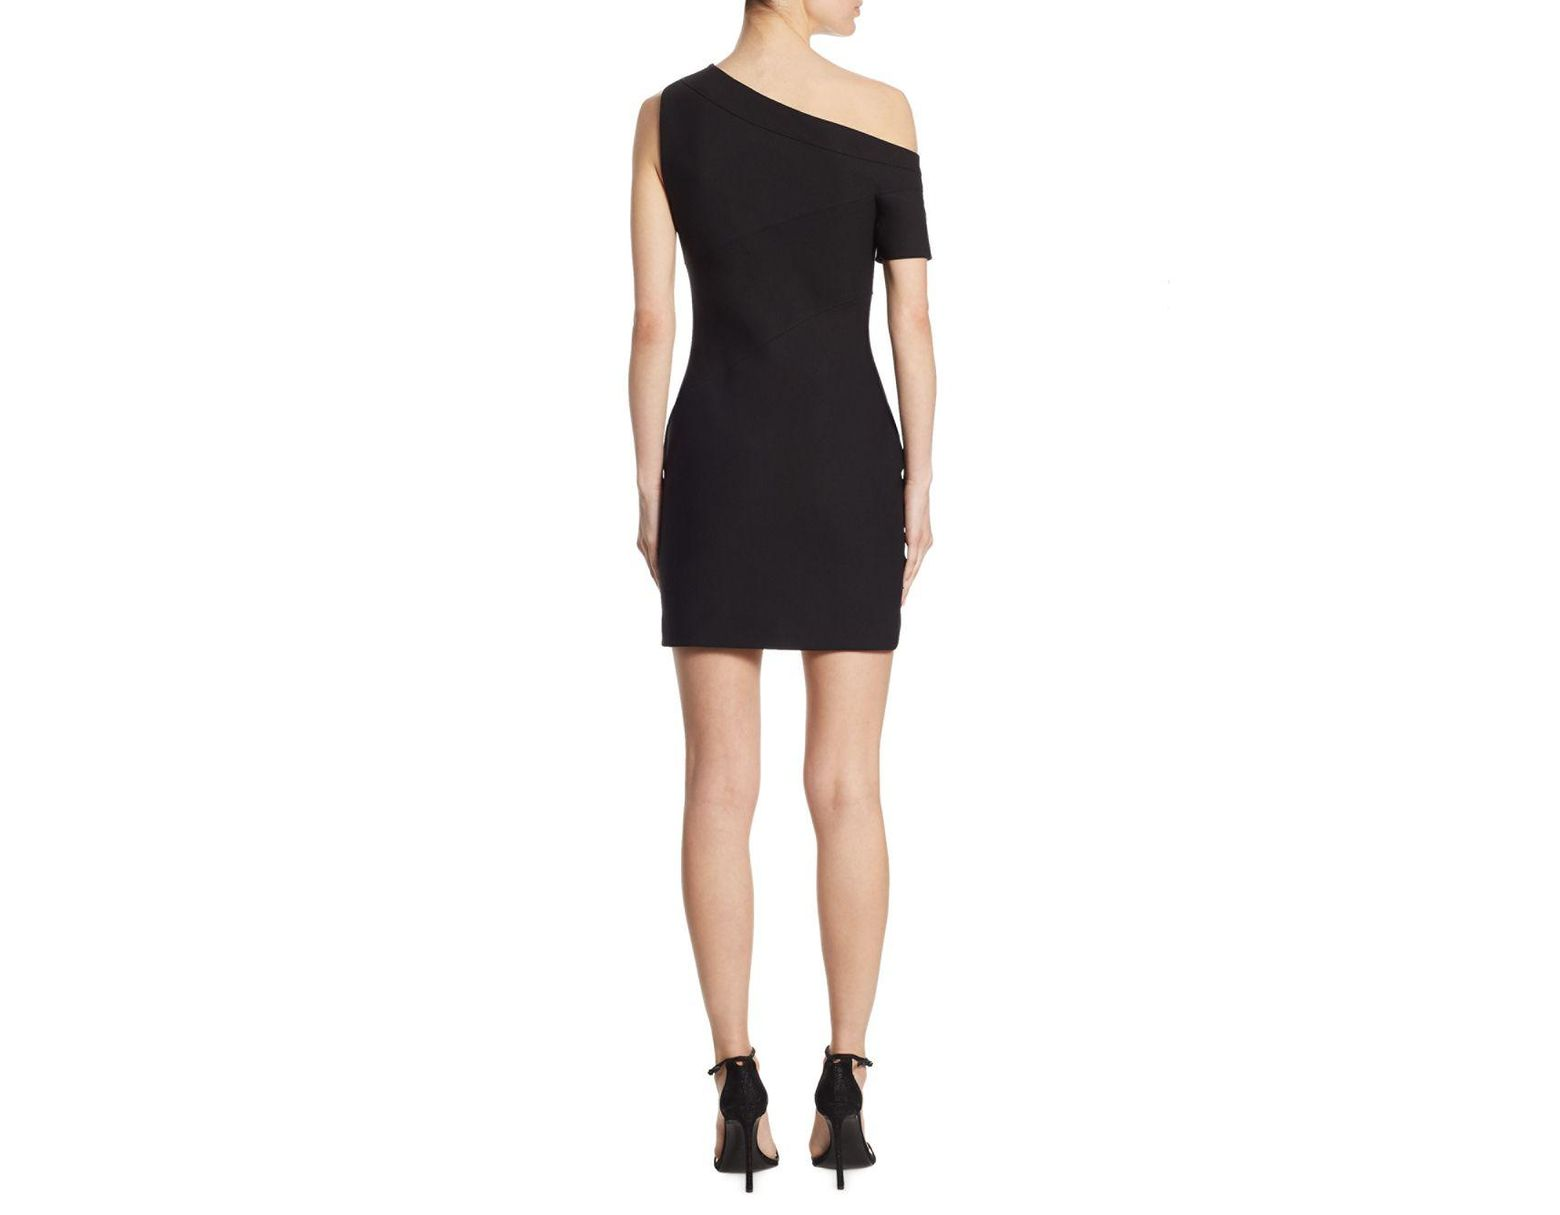 312ecfdc4d0 Cinq À Sept Coralisa Asymmetric Mini Dress in Black - Save 34% - Lyst